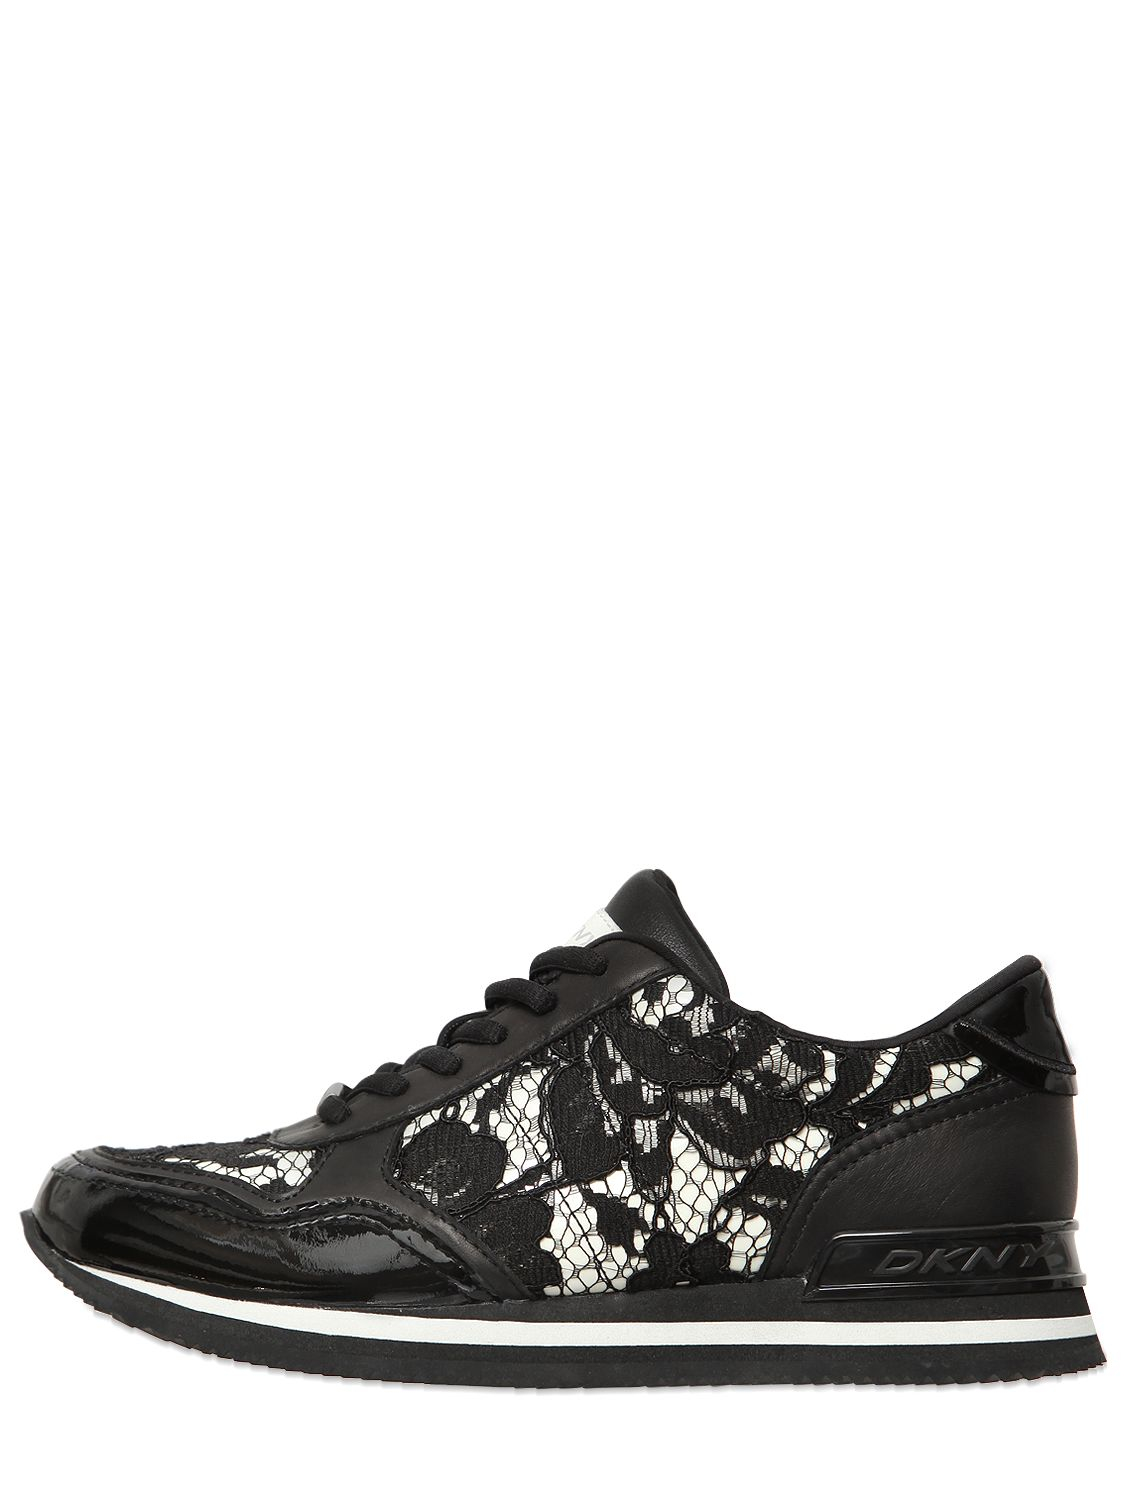 Dkny Jamie Lace Amp Patent Leather Sneakers In Black White